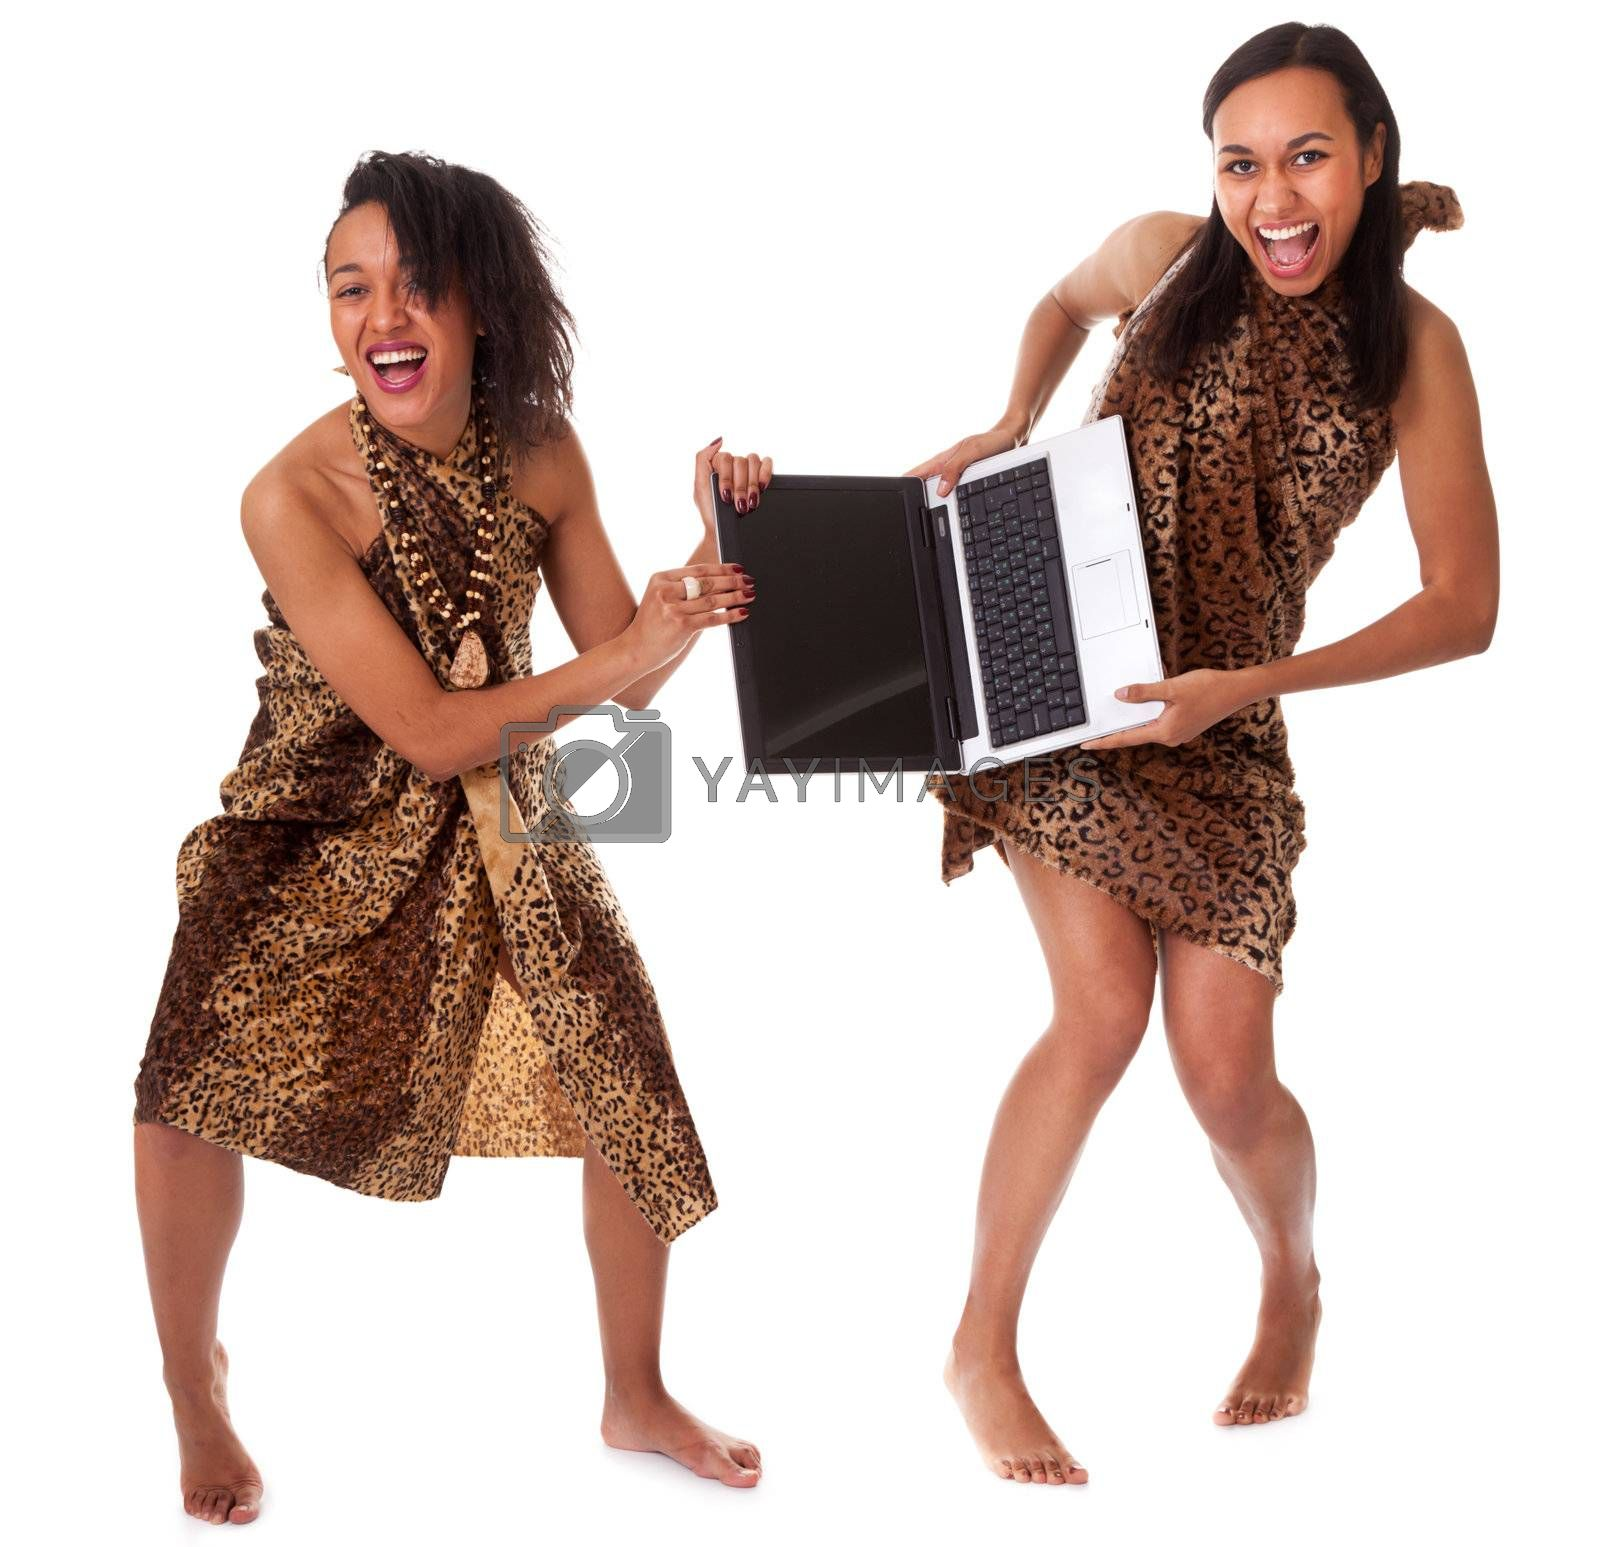 Competition between two barefoot girls in animal print for one laptop